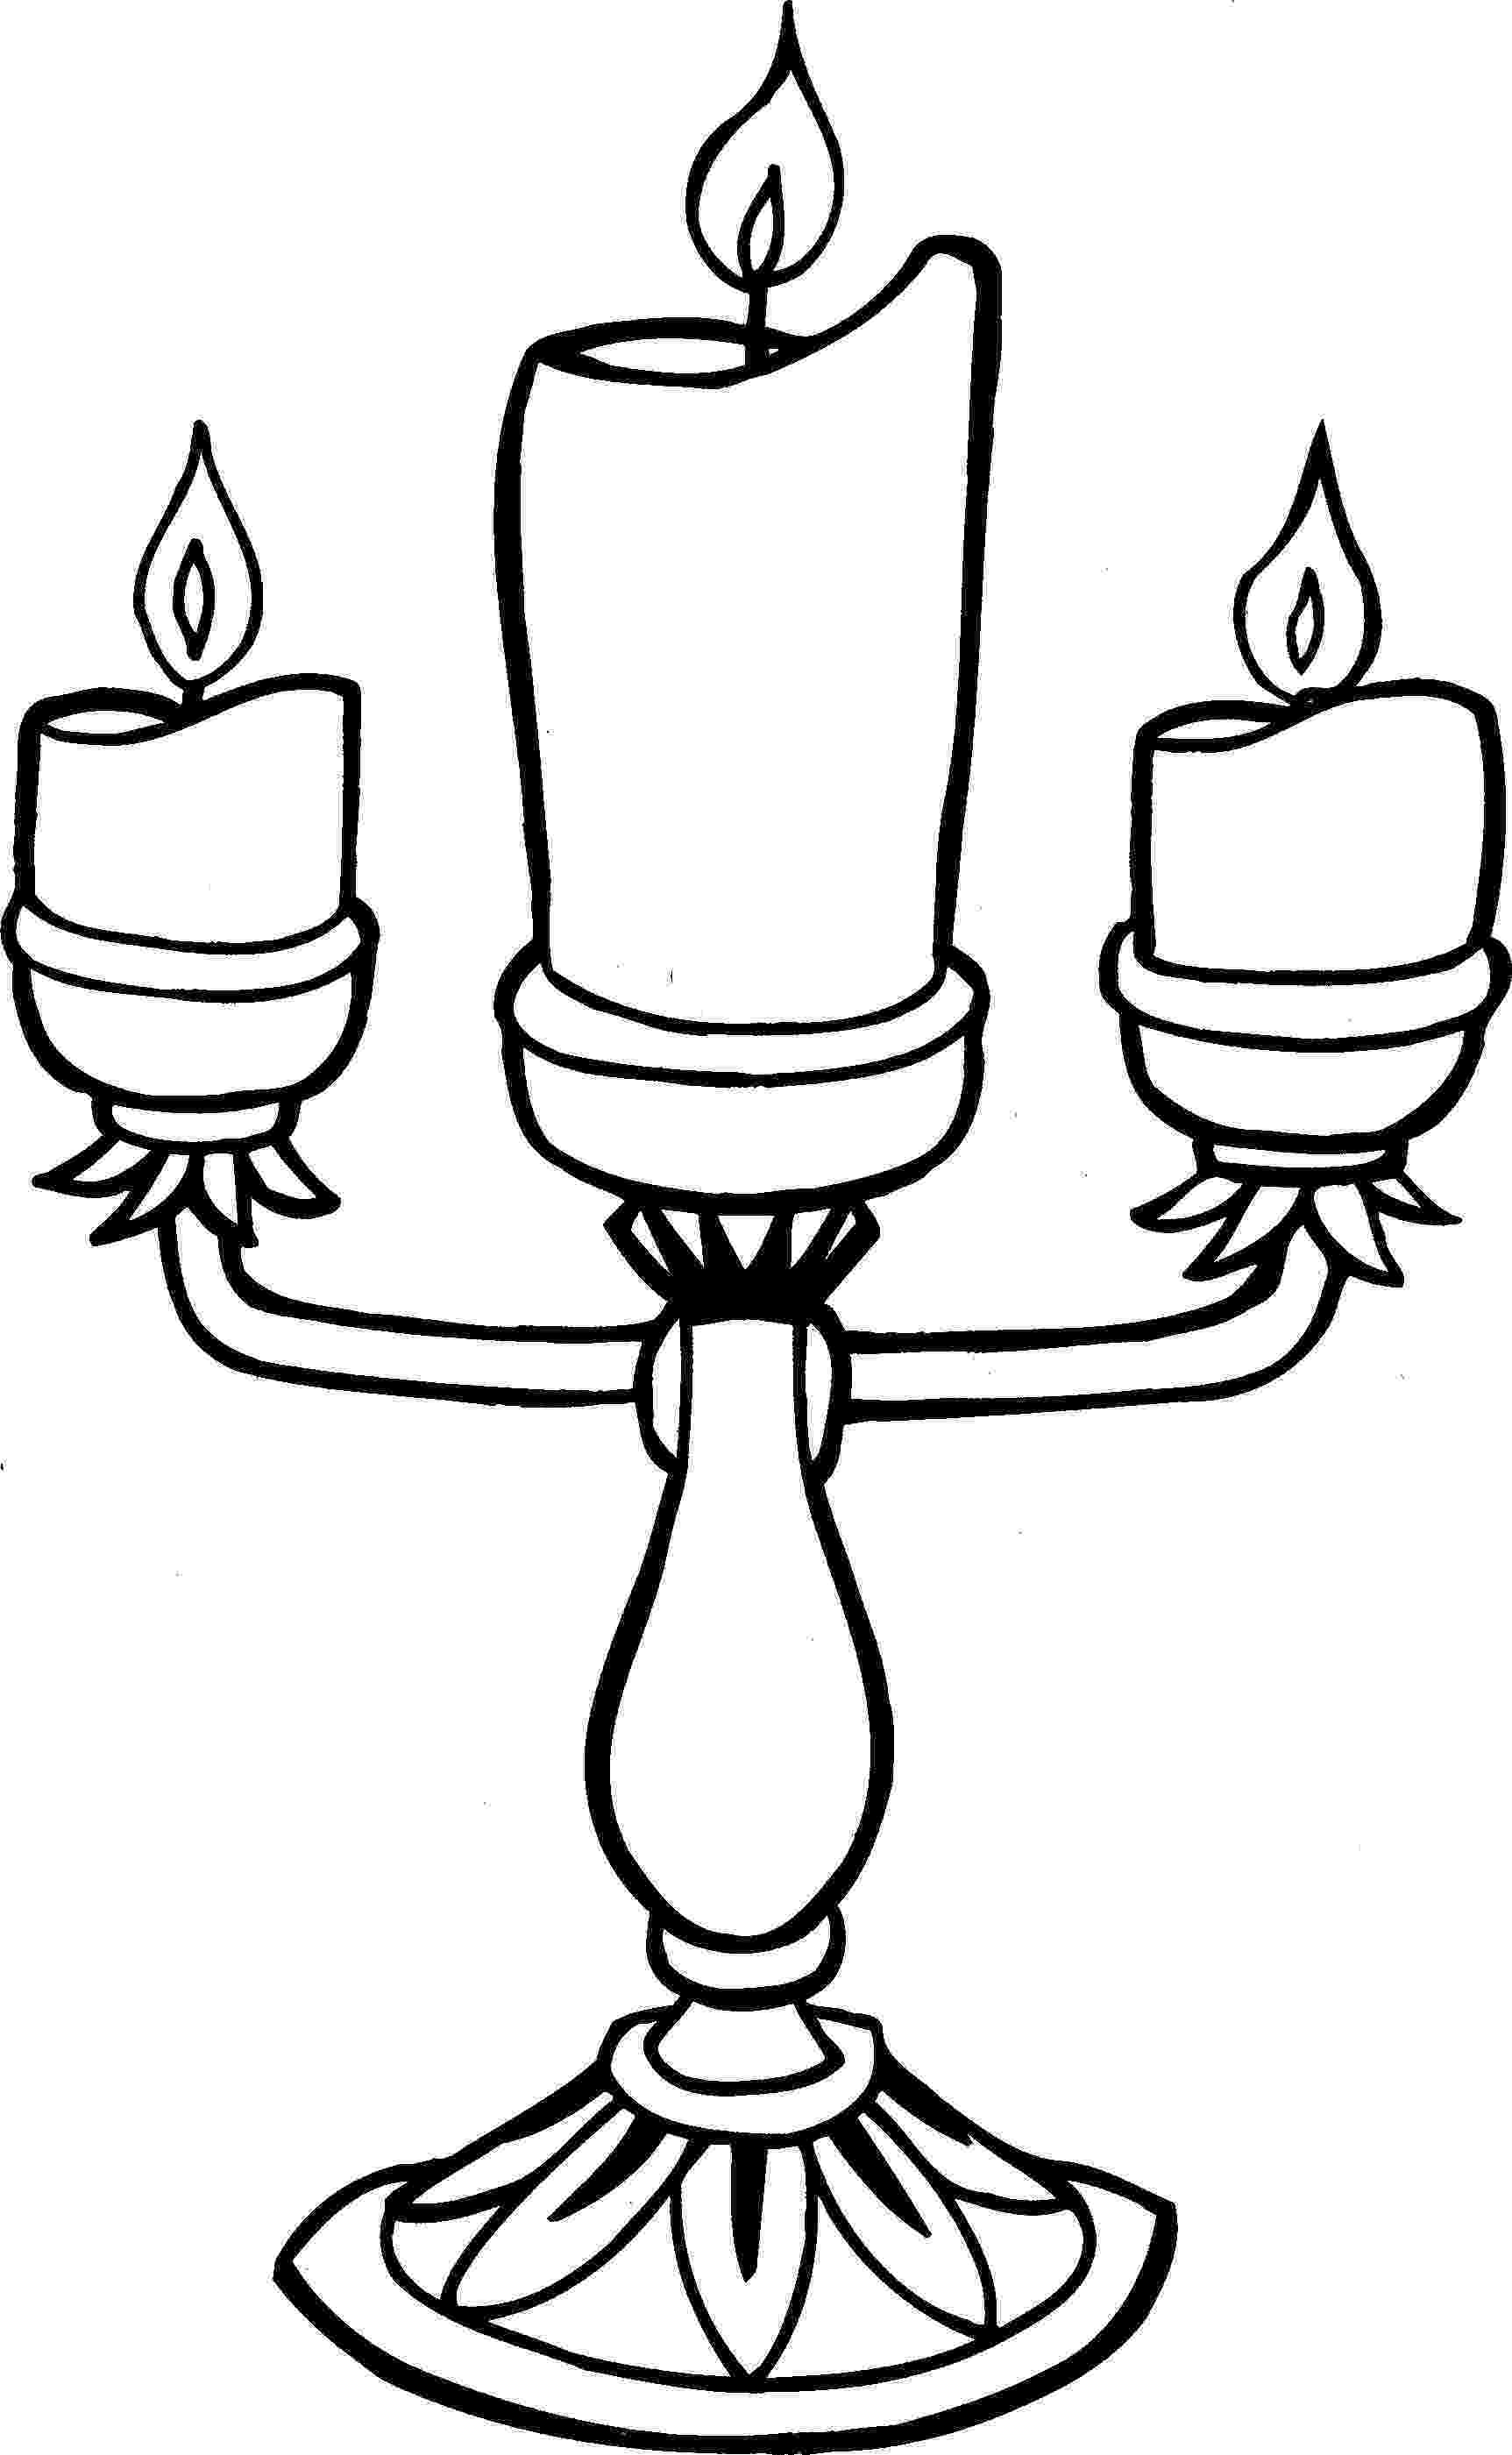 coloring pages to color candle coloring pages to download and print for free to coloring pages color